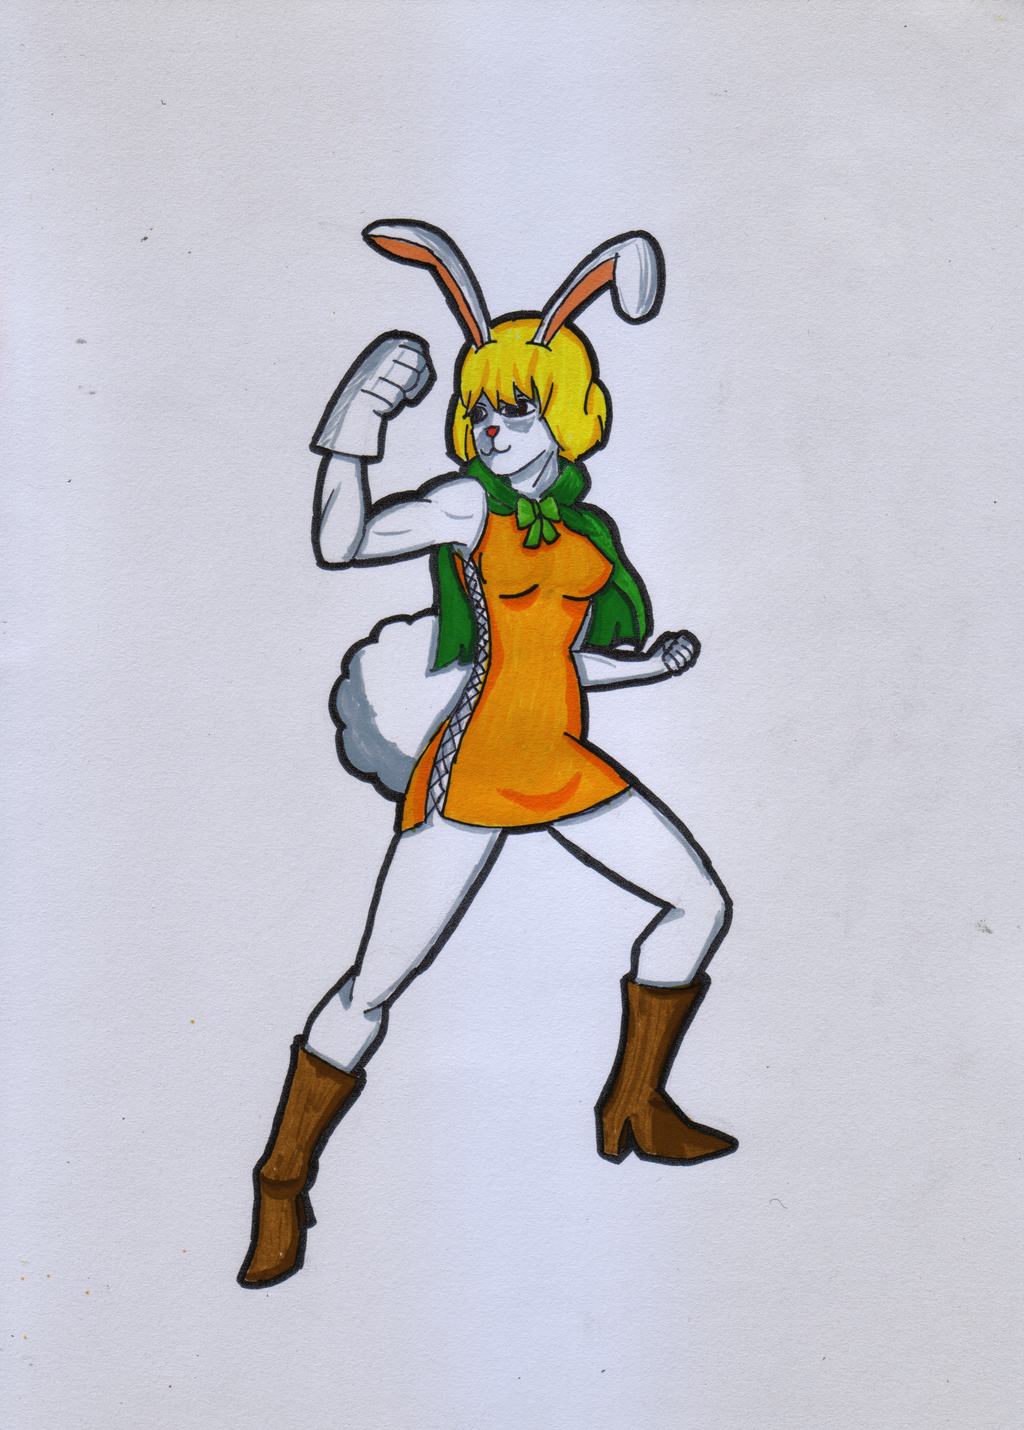 Carrot from One Piece by ForestB